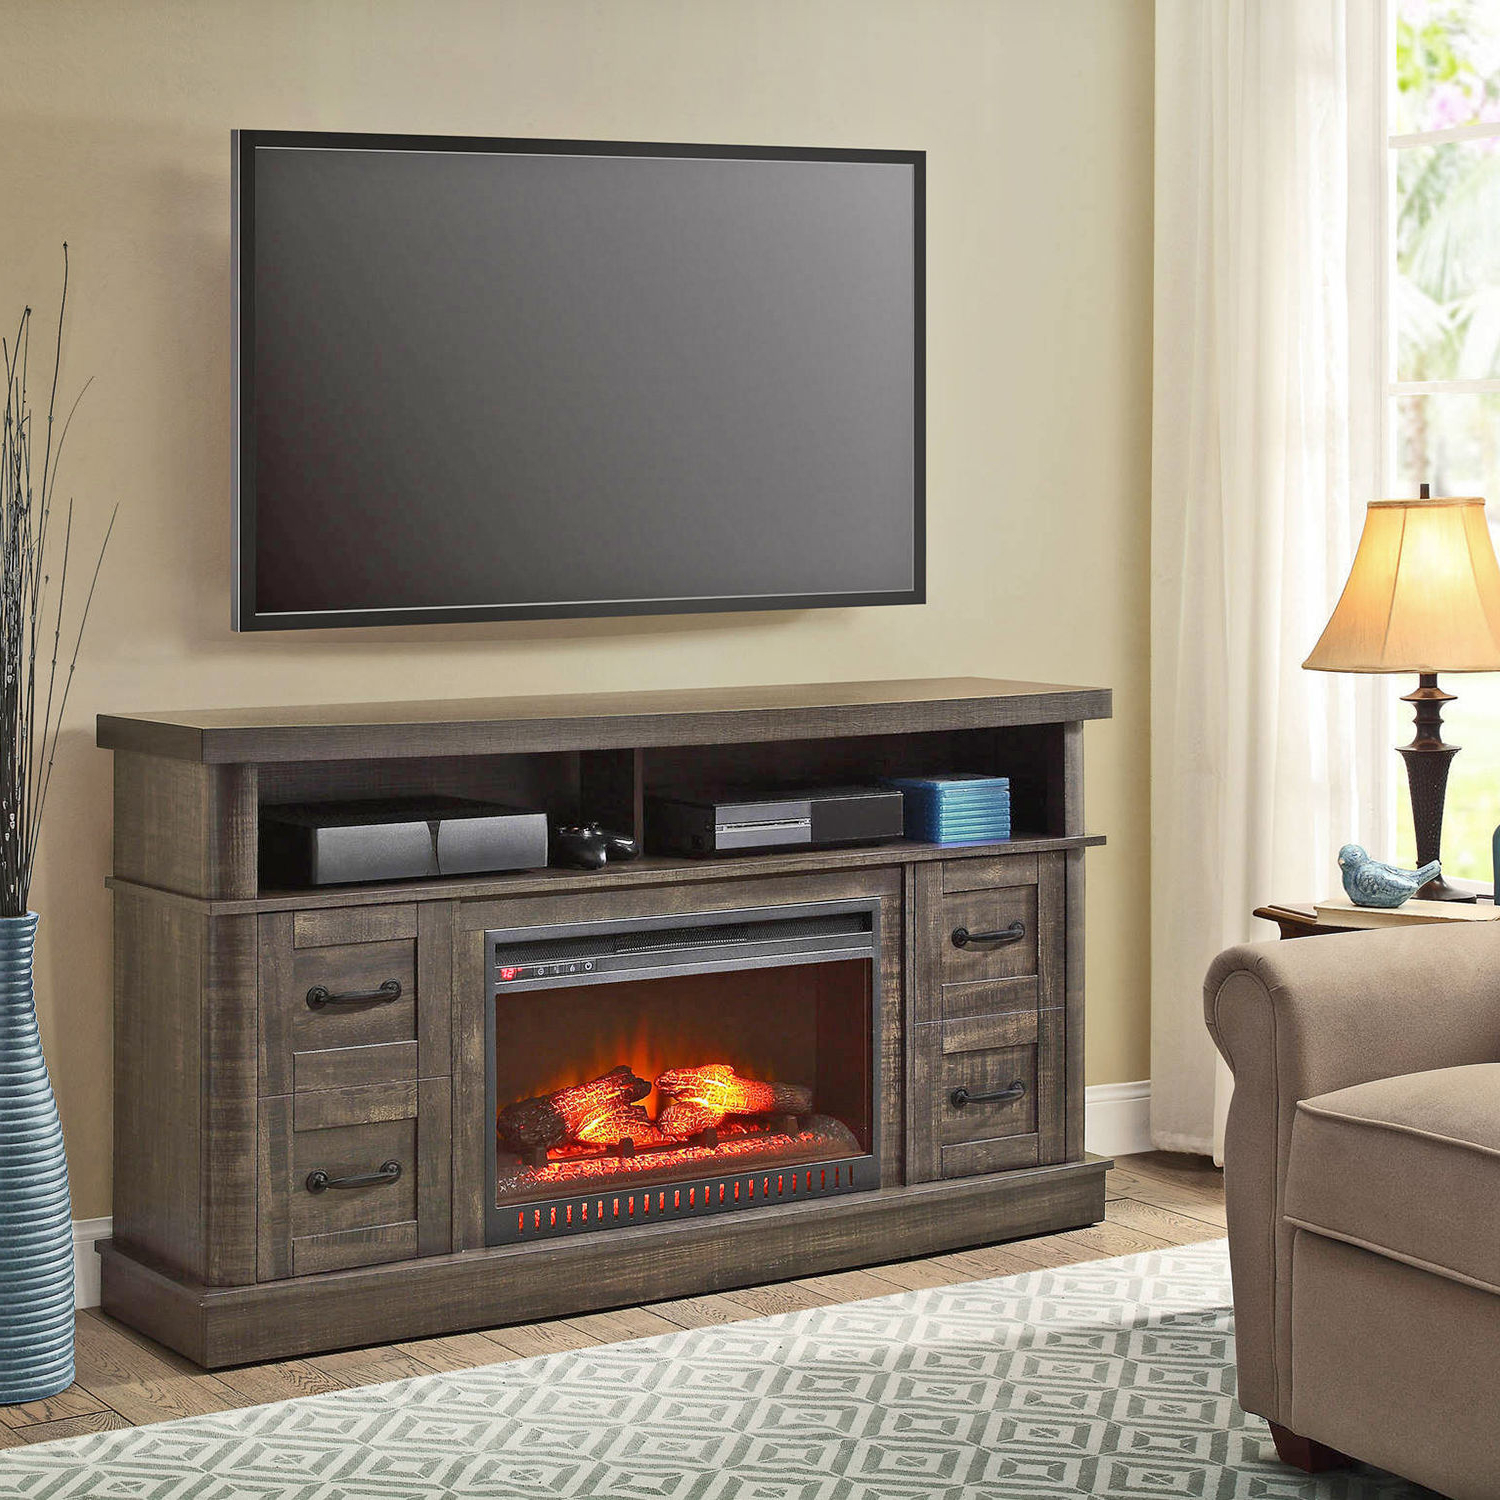 Big Lots Tv Stand Manual 75 Inch With Fireplace Home Depot Electric Inside Best And Newest Big Lots Tv Stands (View 1 of 20)